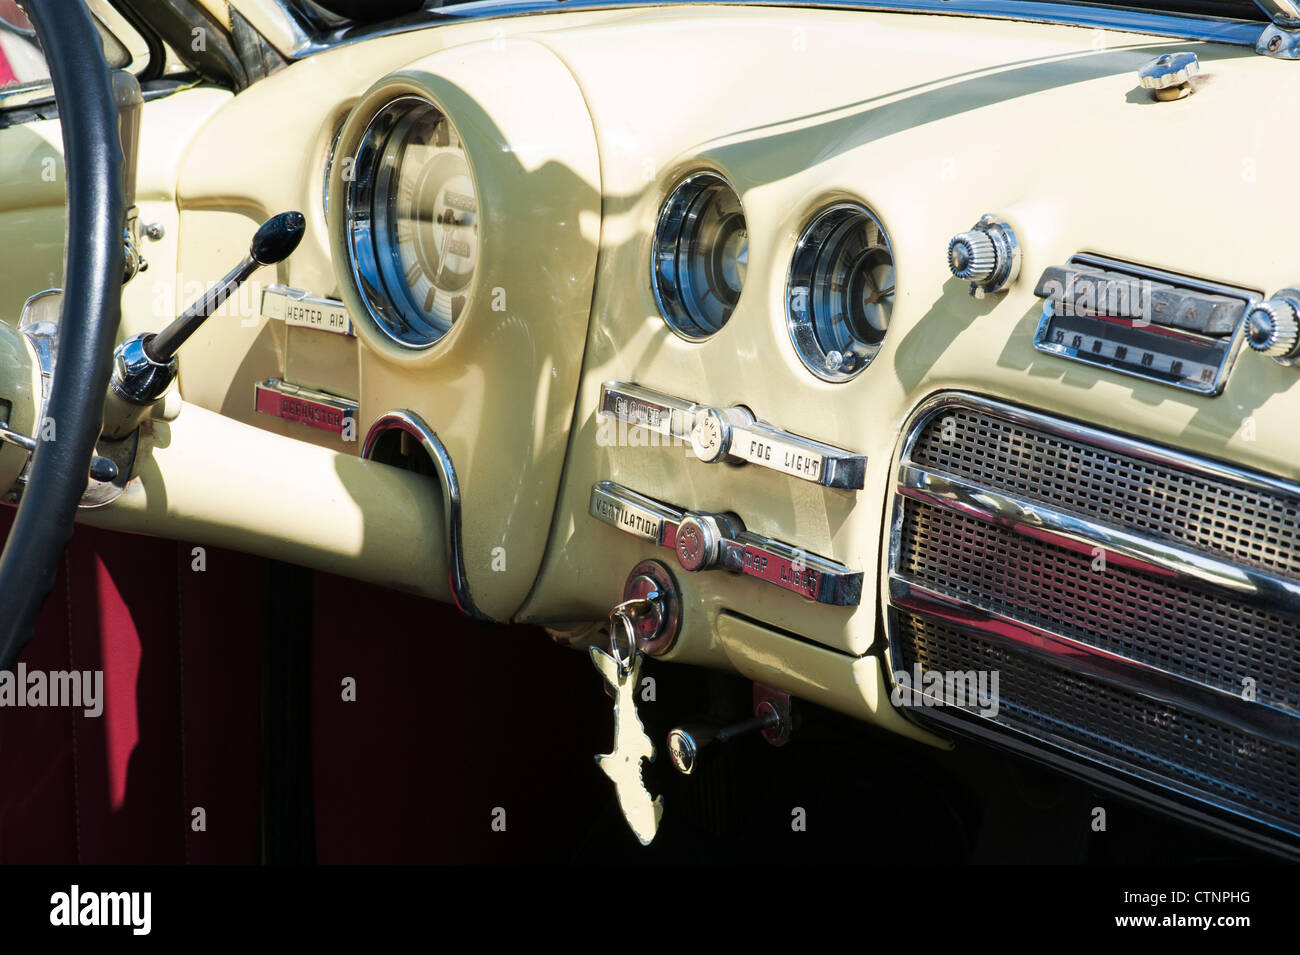 1949 buick super dynaflow dash classic american car stock photo royalty free image 49651212. Black Bedroom Furniture Sets. Home Design Ideas